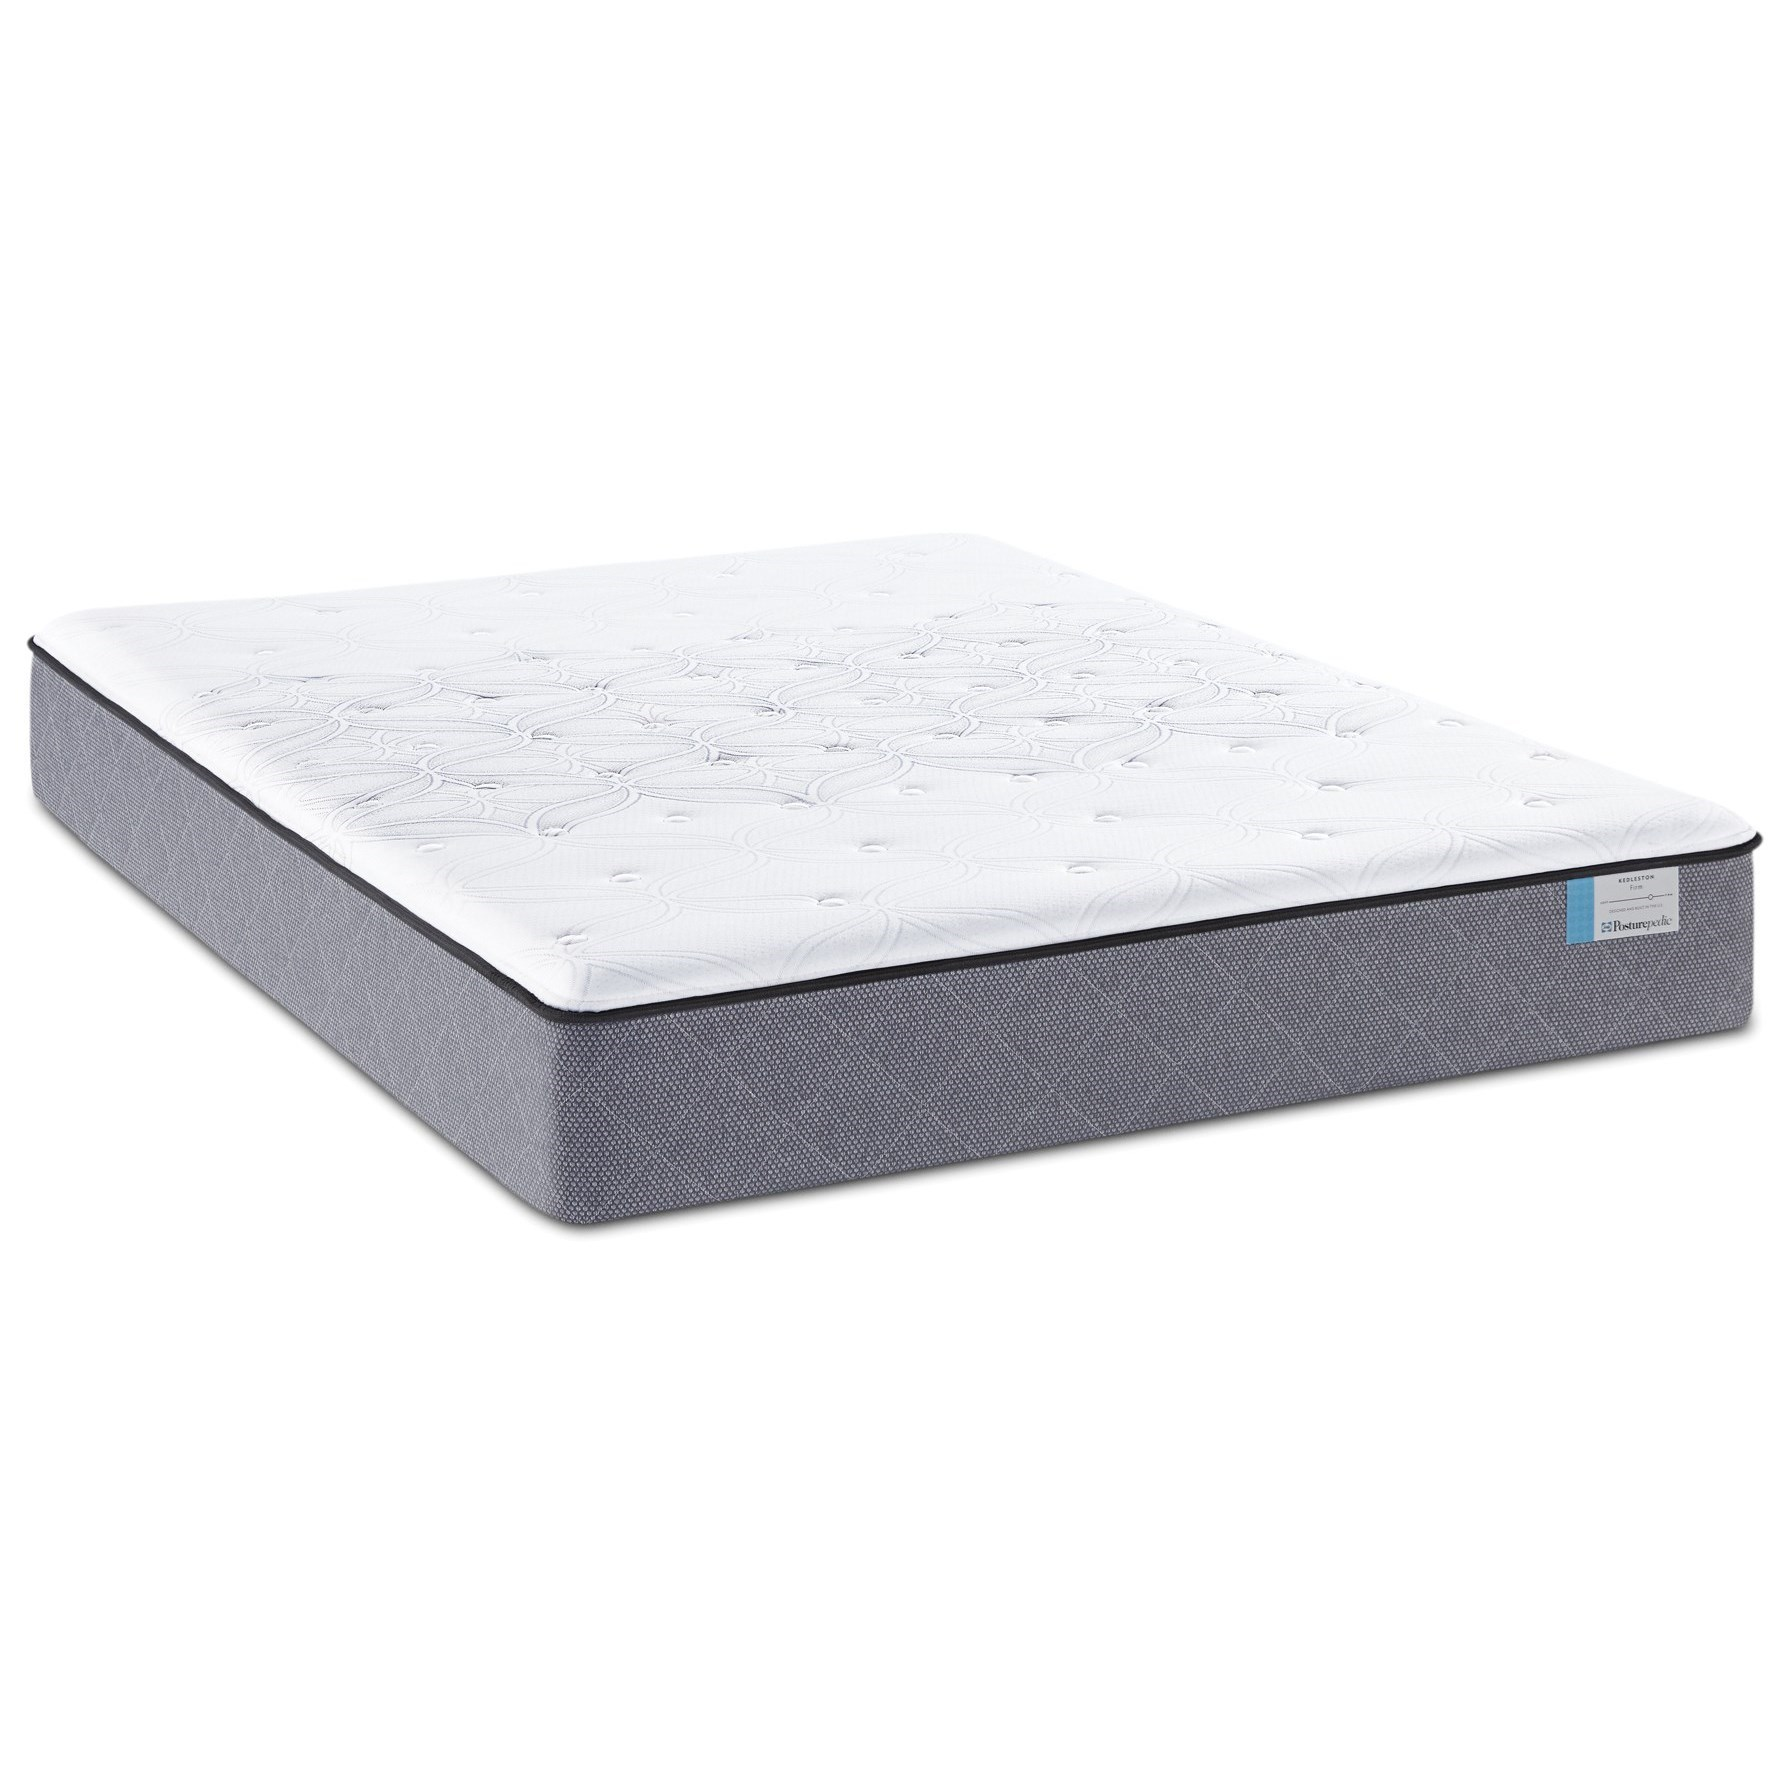 Sealy Posturepedic Delegate Twin Firm Mattress Adj Set - Item Number: FirmTT-T+Ease-T